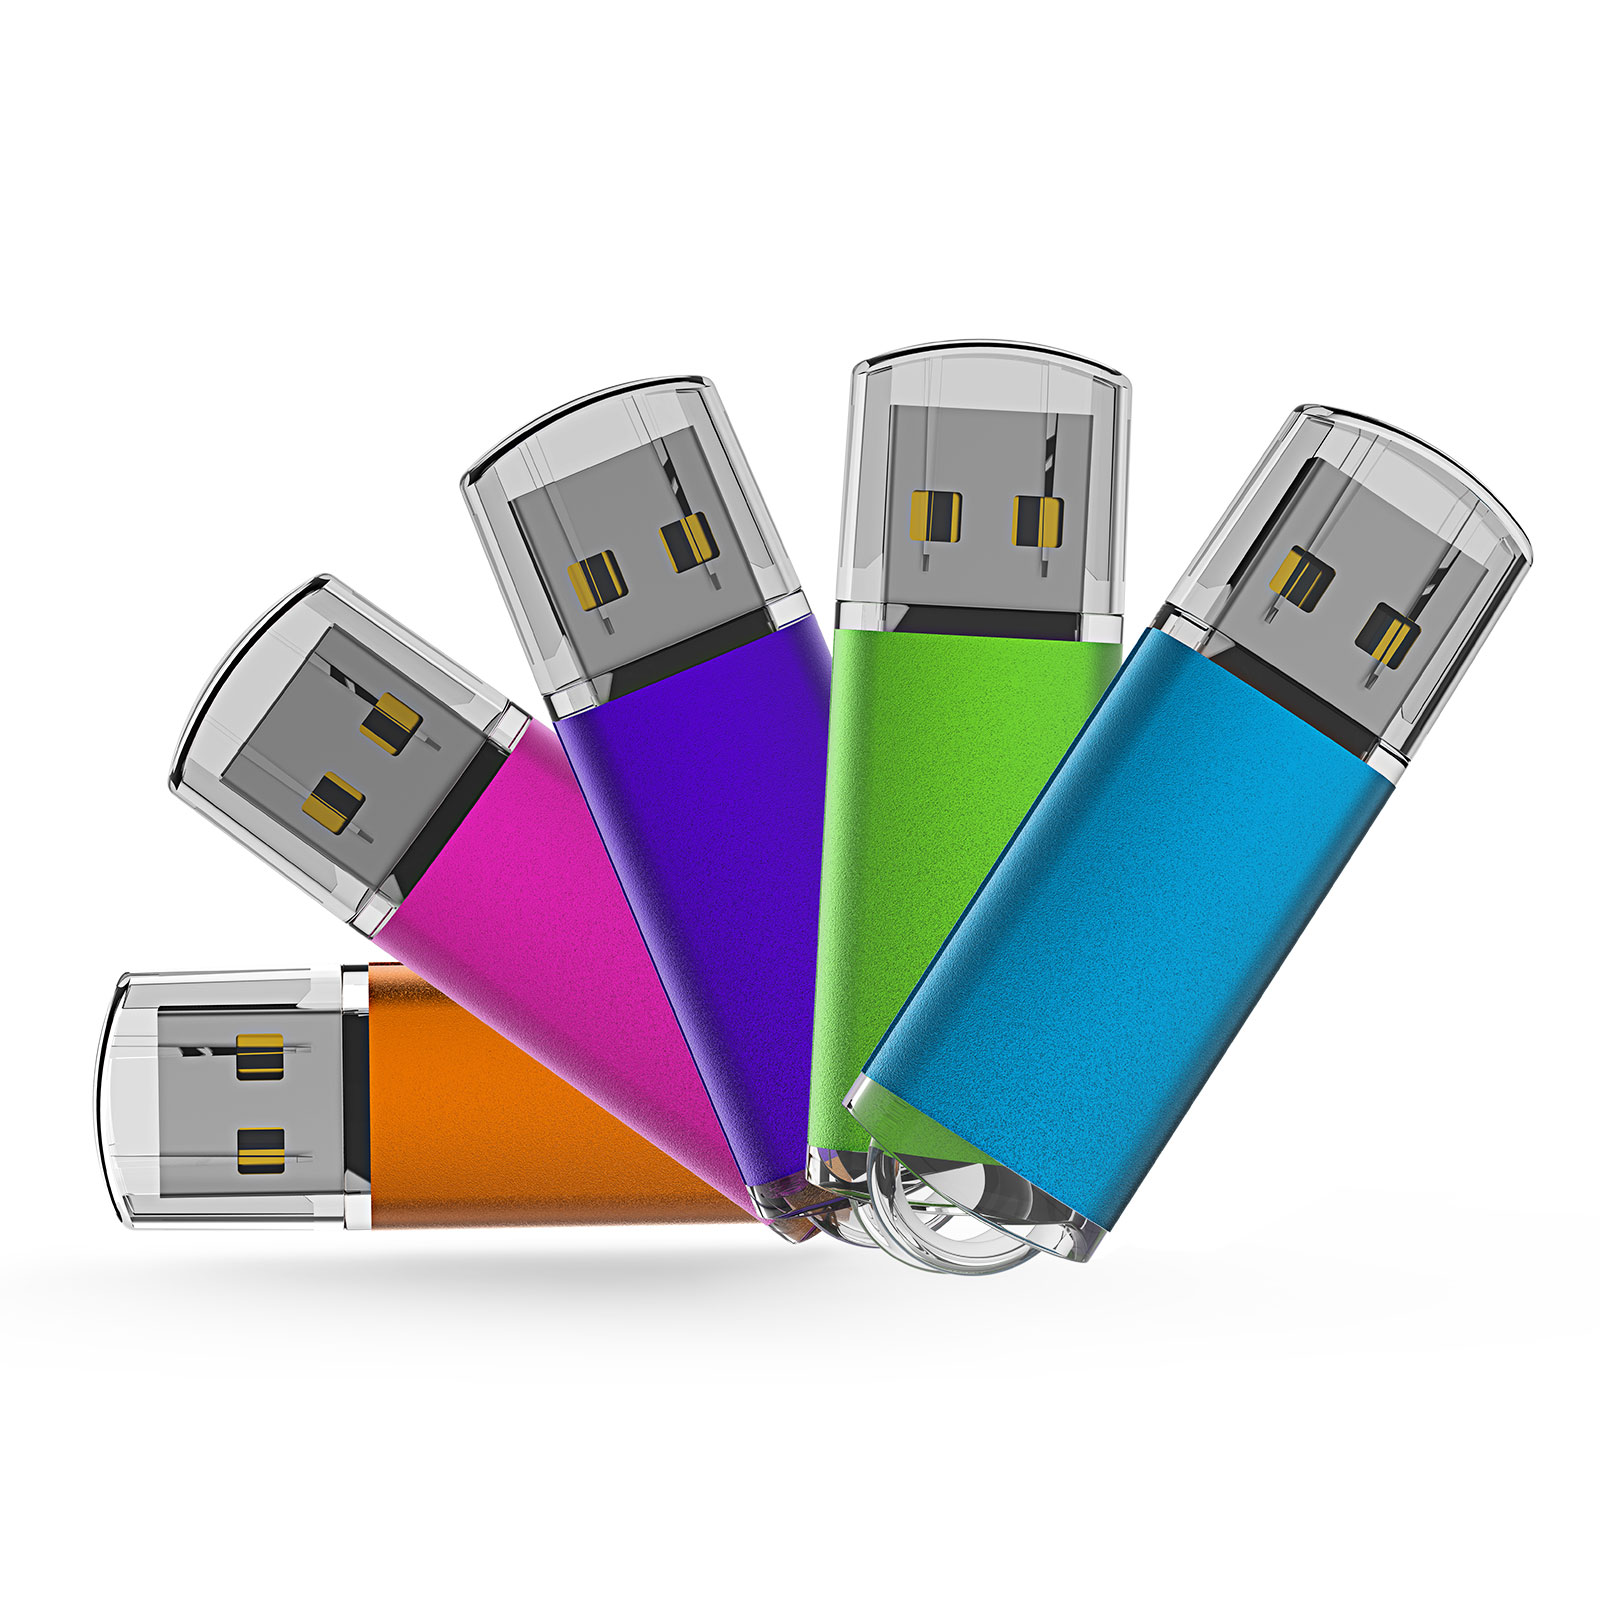 Clearance! KOOTION 2GB USB Flash Drive Memory Stick Fold Storage Thumb Pen Drive Swivel 5 Colors